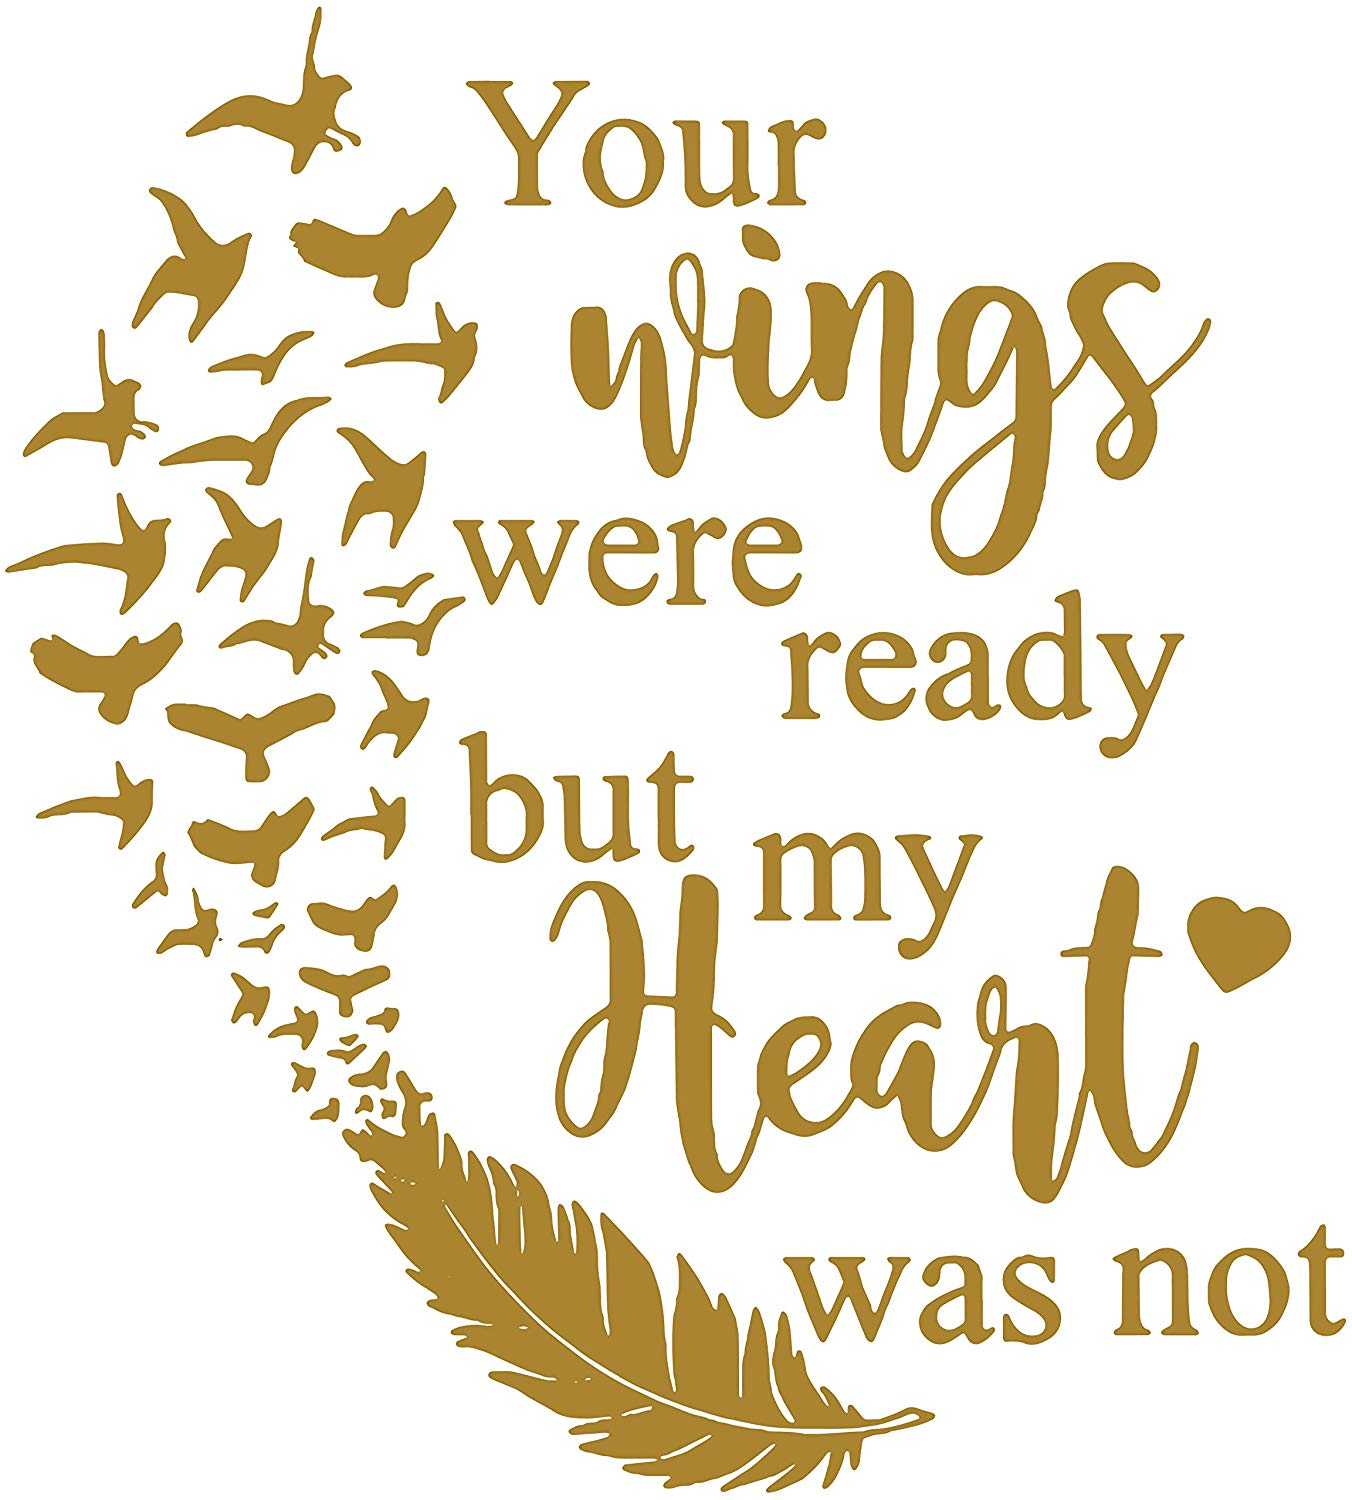 Amazon.com: Omega Your Wings were Ready but My Heart was not.